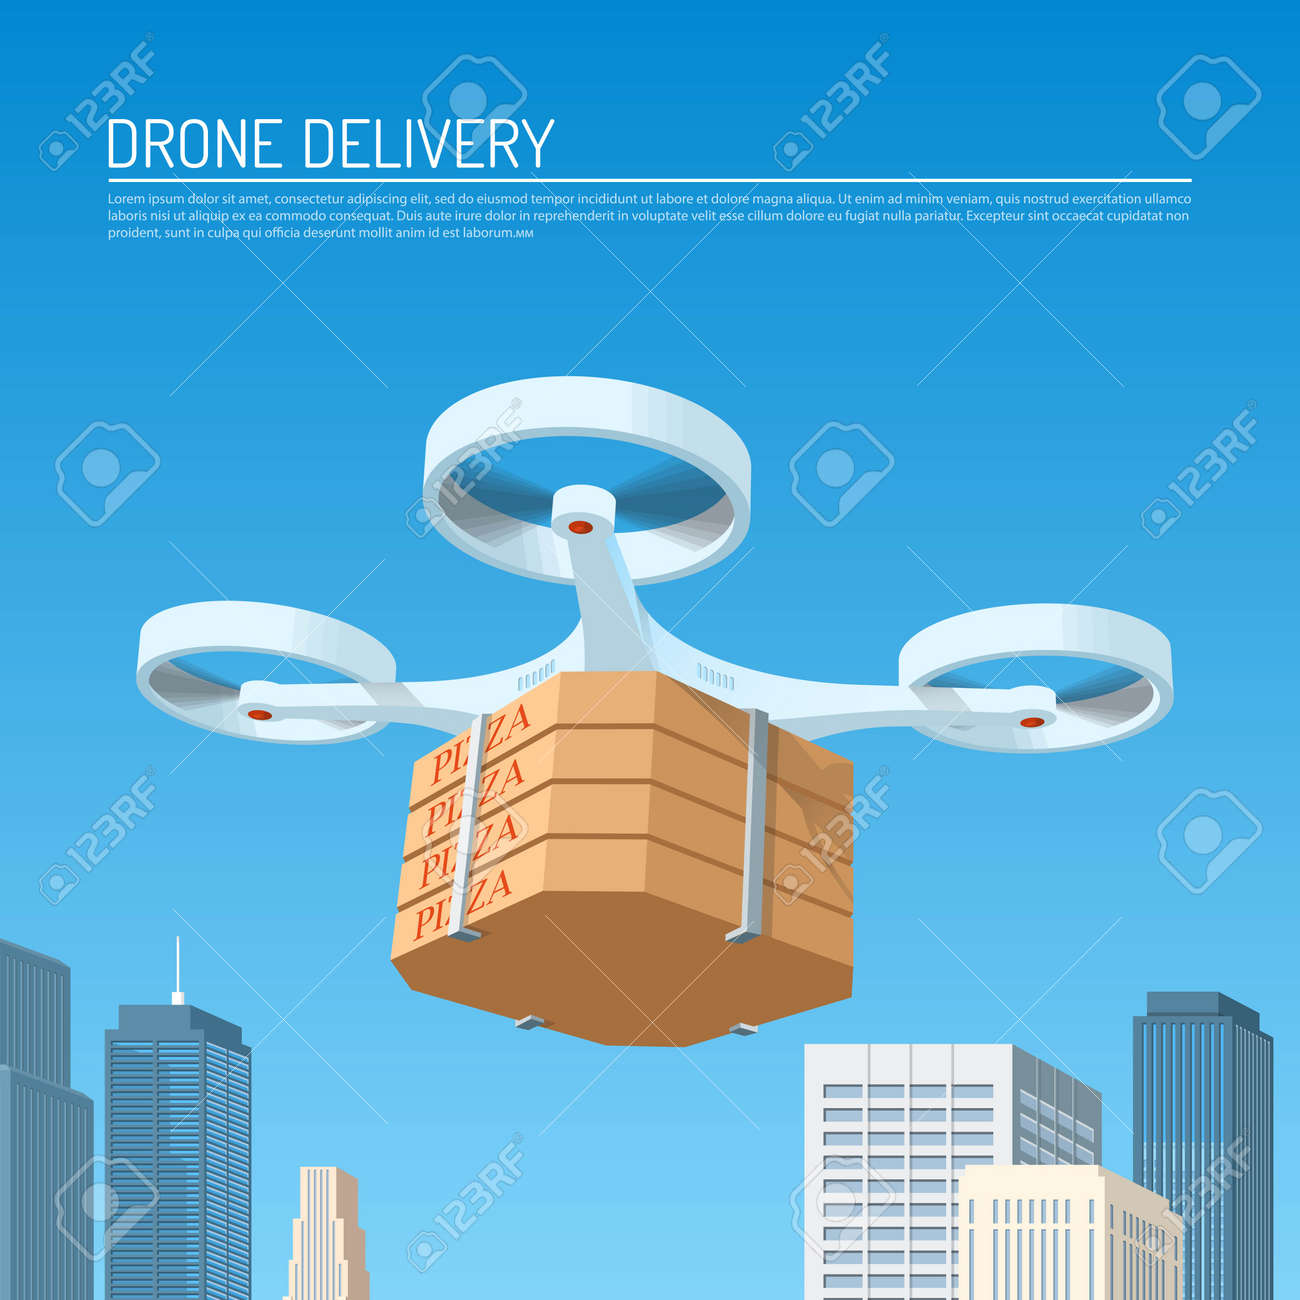 Drone delivery concept vector illustration  Quadcopter carrying